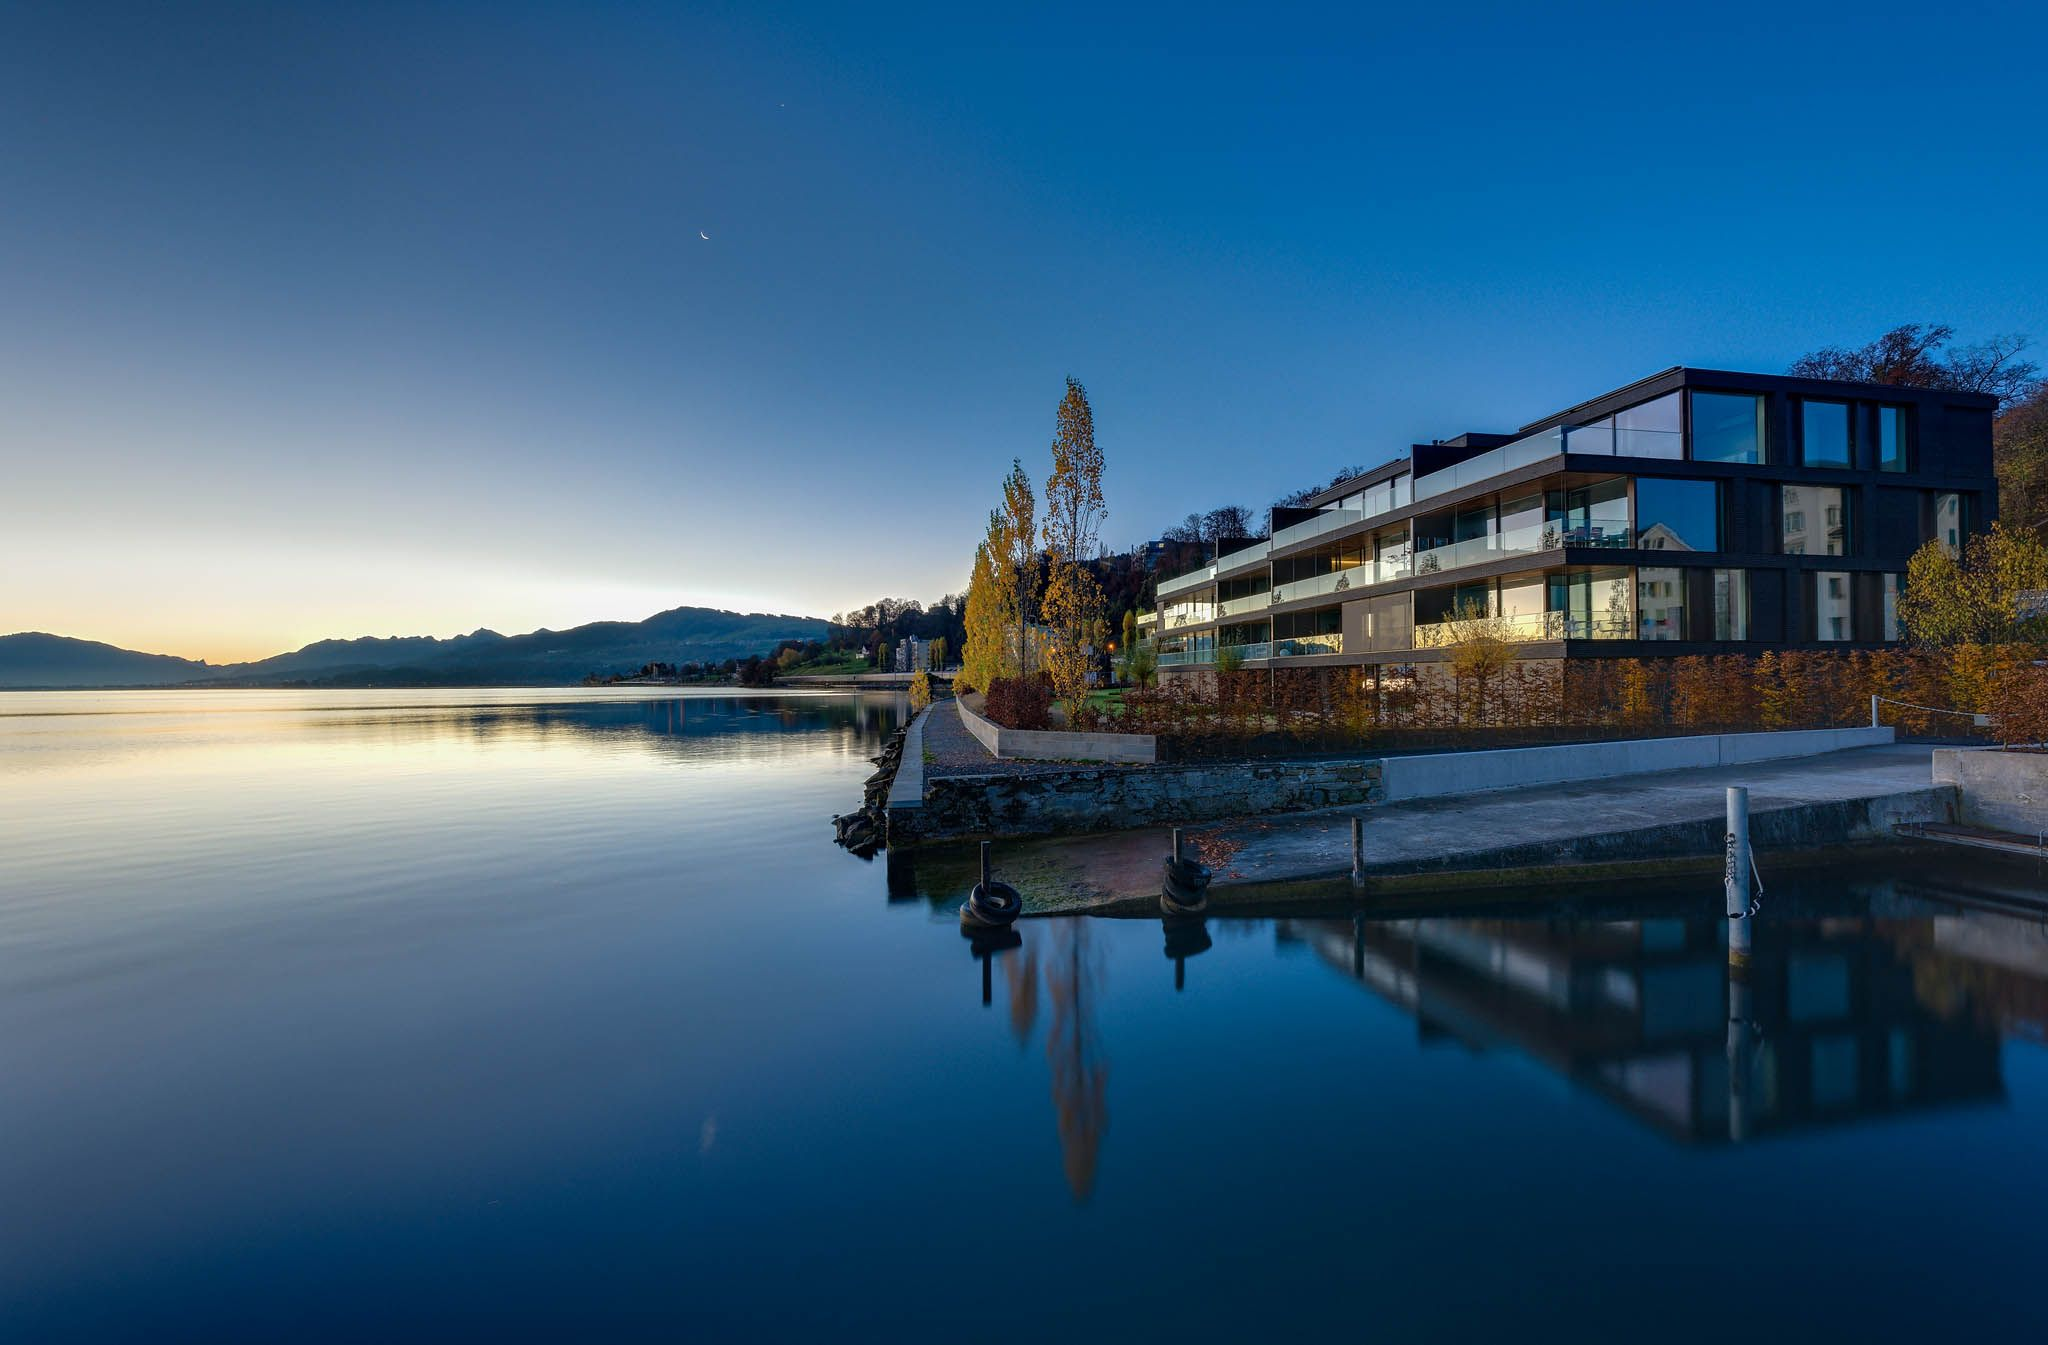 Peninsula Beach House, Switzerland Architecture: Buchner Bründler Architekten, Switzerland www.bbarc.ch Photography: Soenne, Architekturfotograf DGPh, Germany www.soenne.com